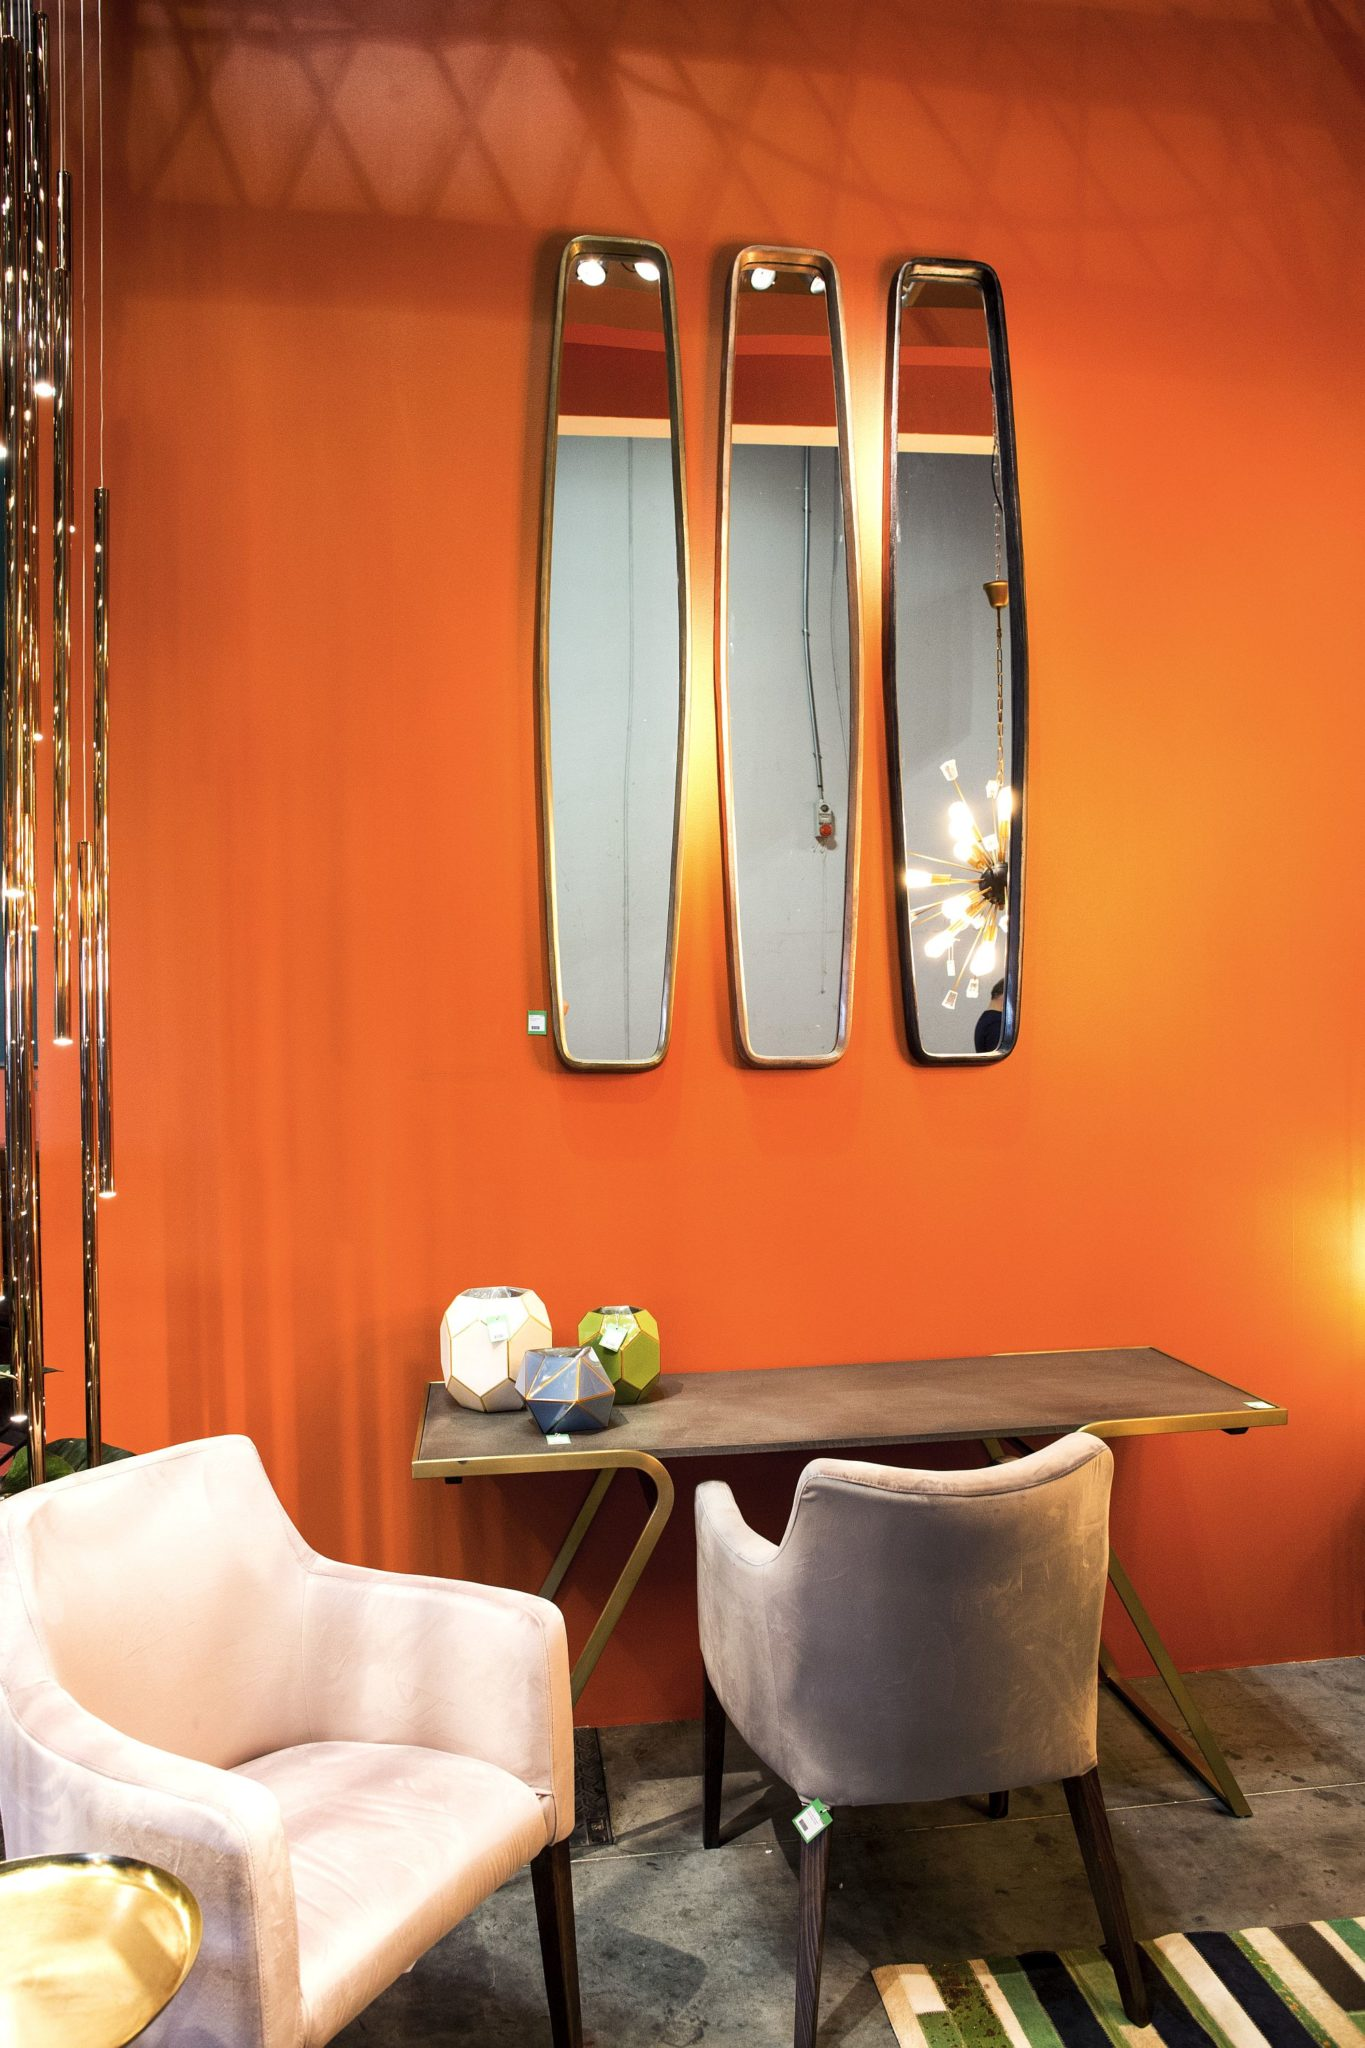 Trio of elongated mirrors with a dashing backdrop in orange